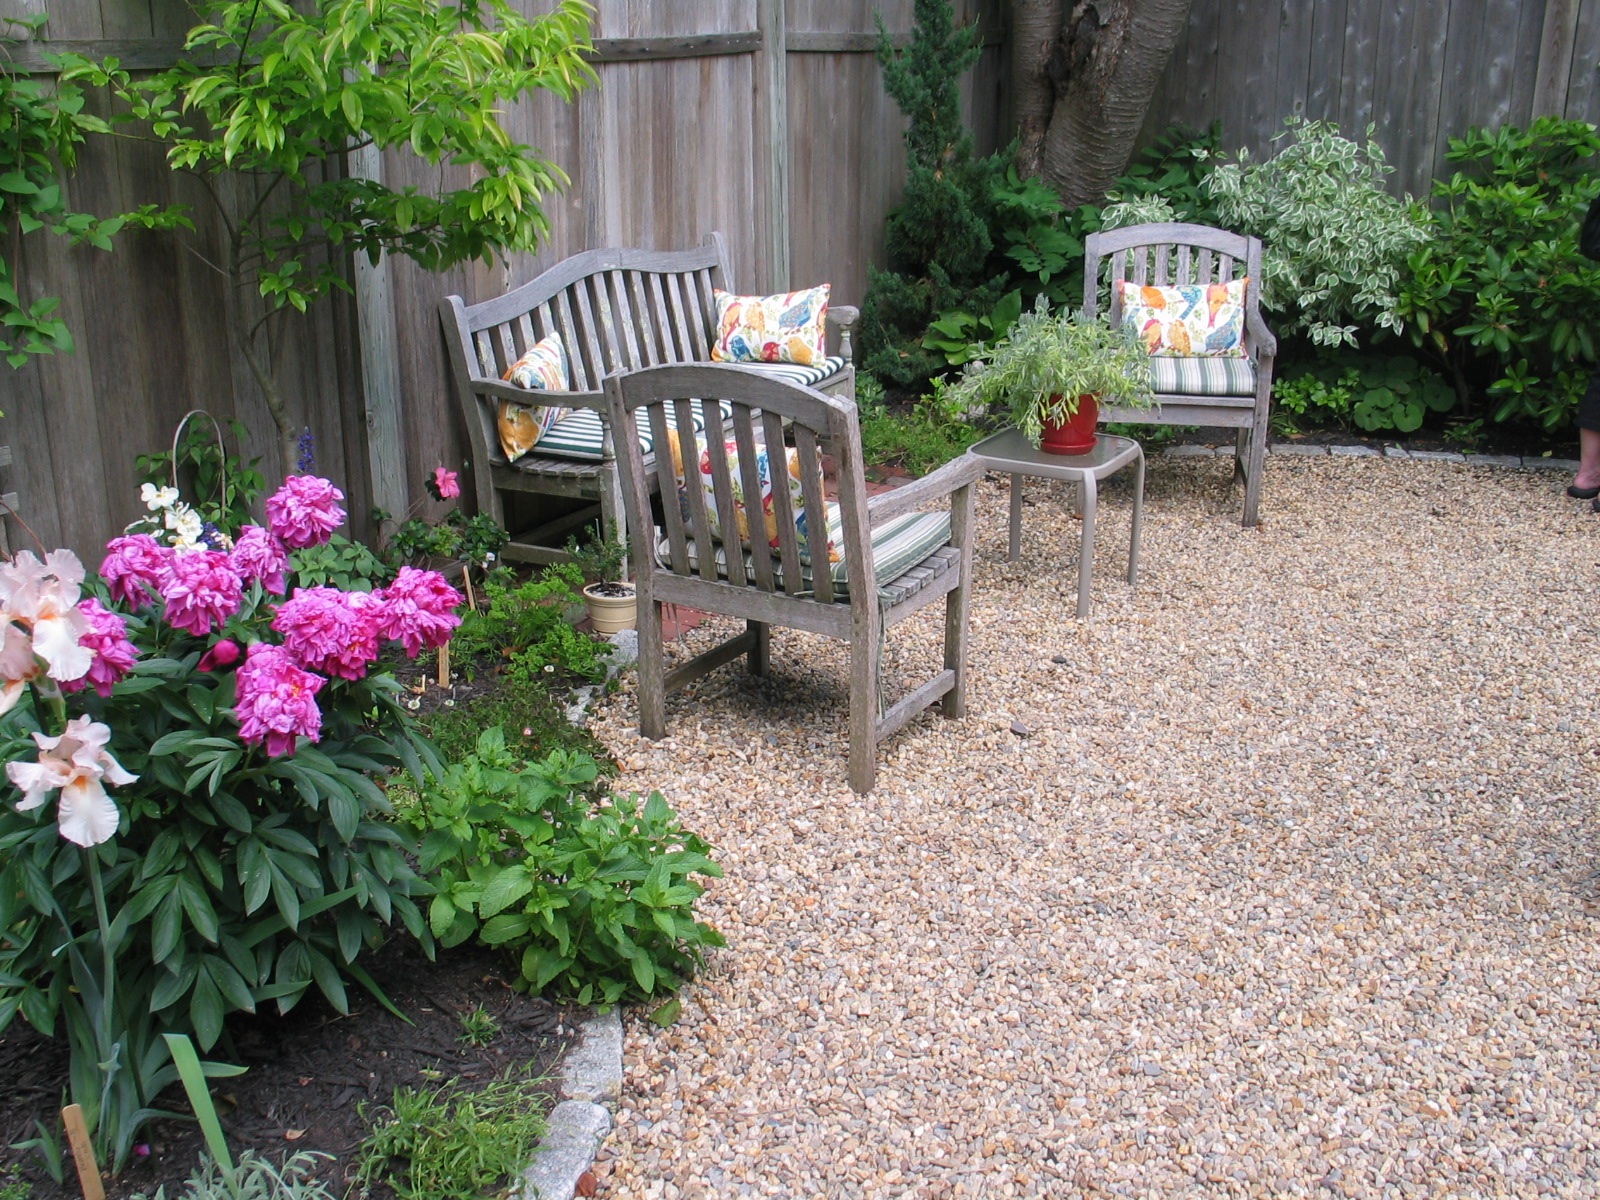 A gardener eliminates the lawn american gardening for Gravel garden designs